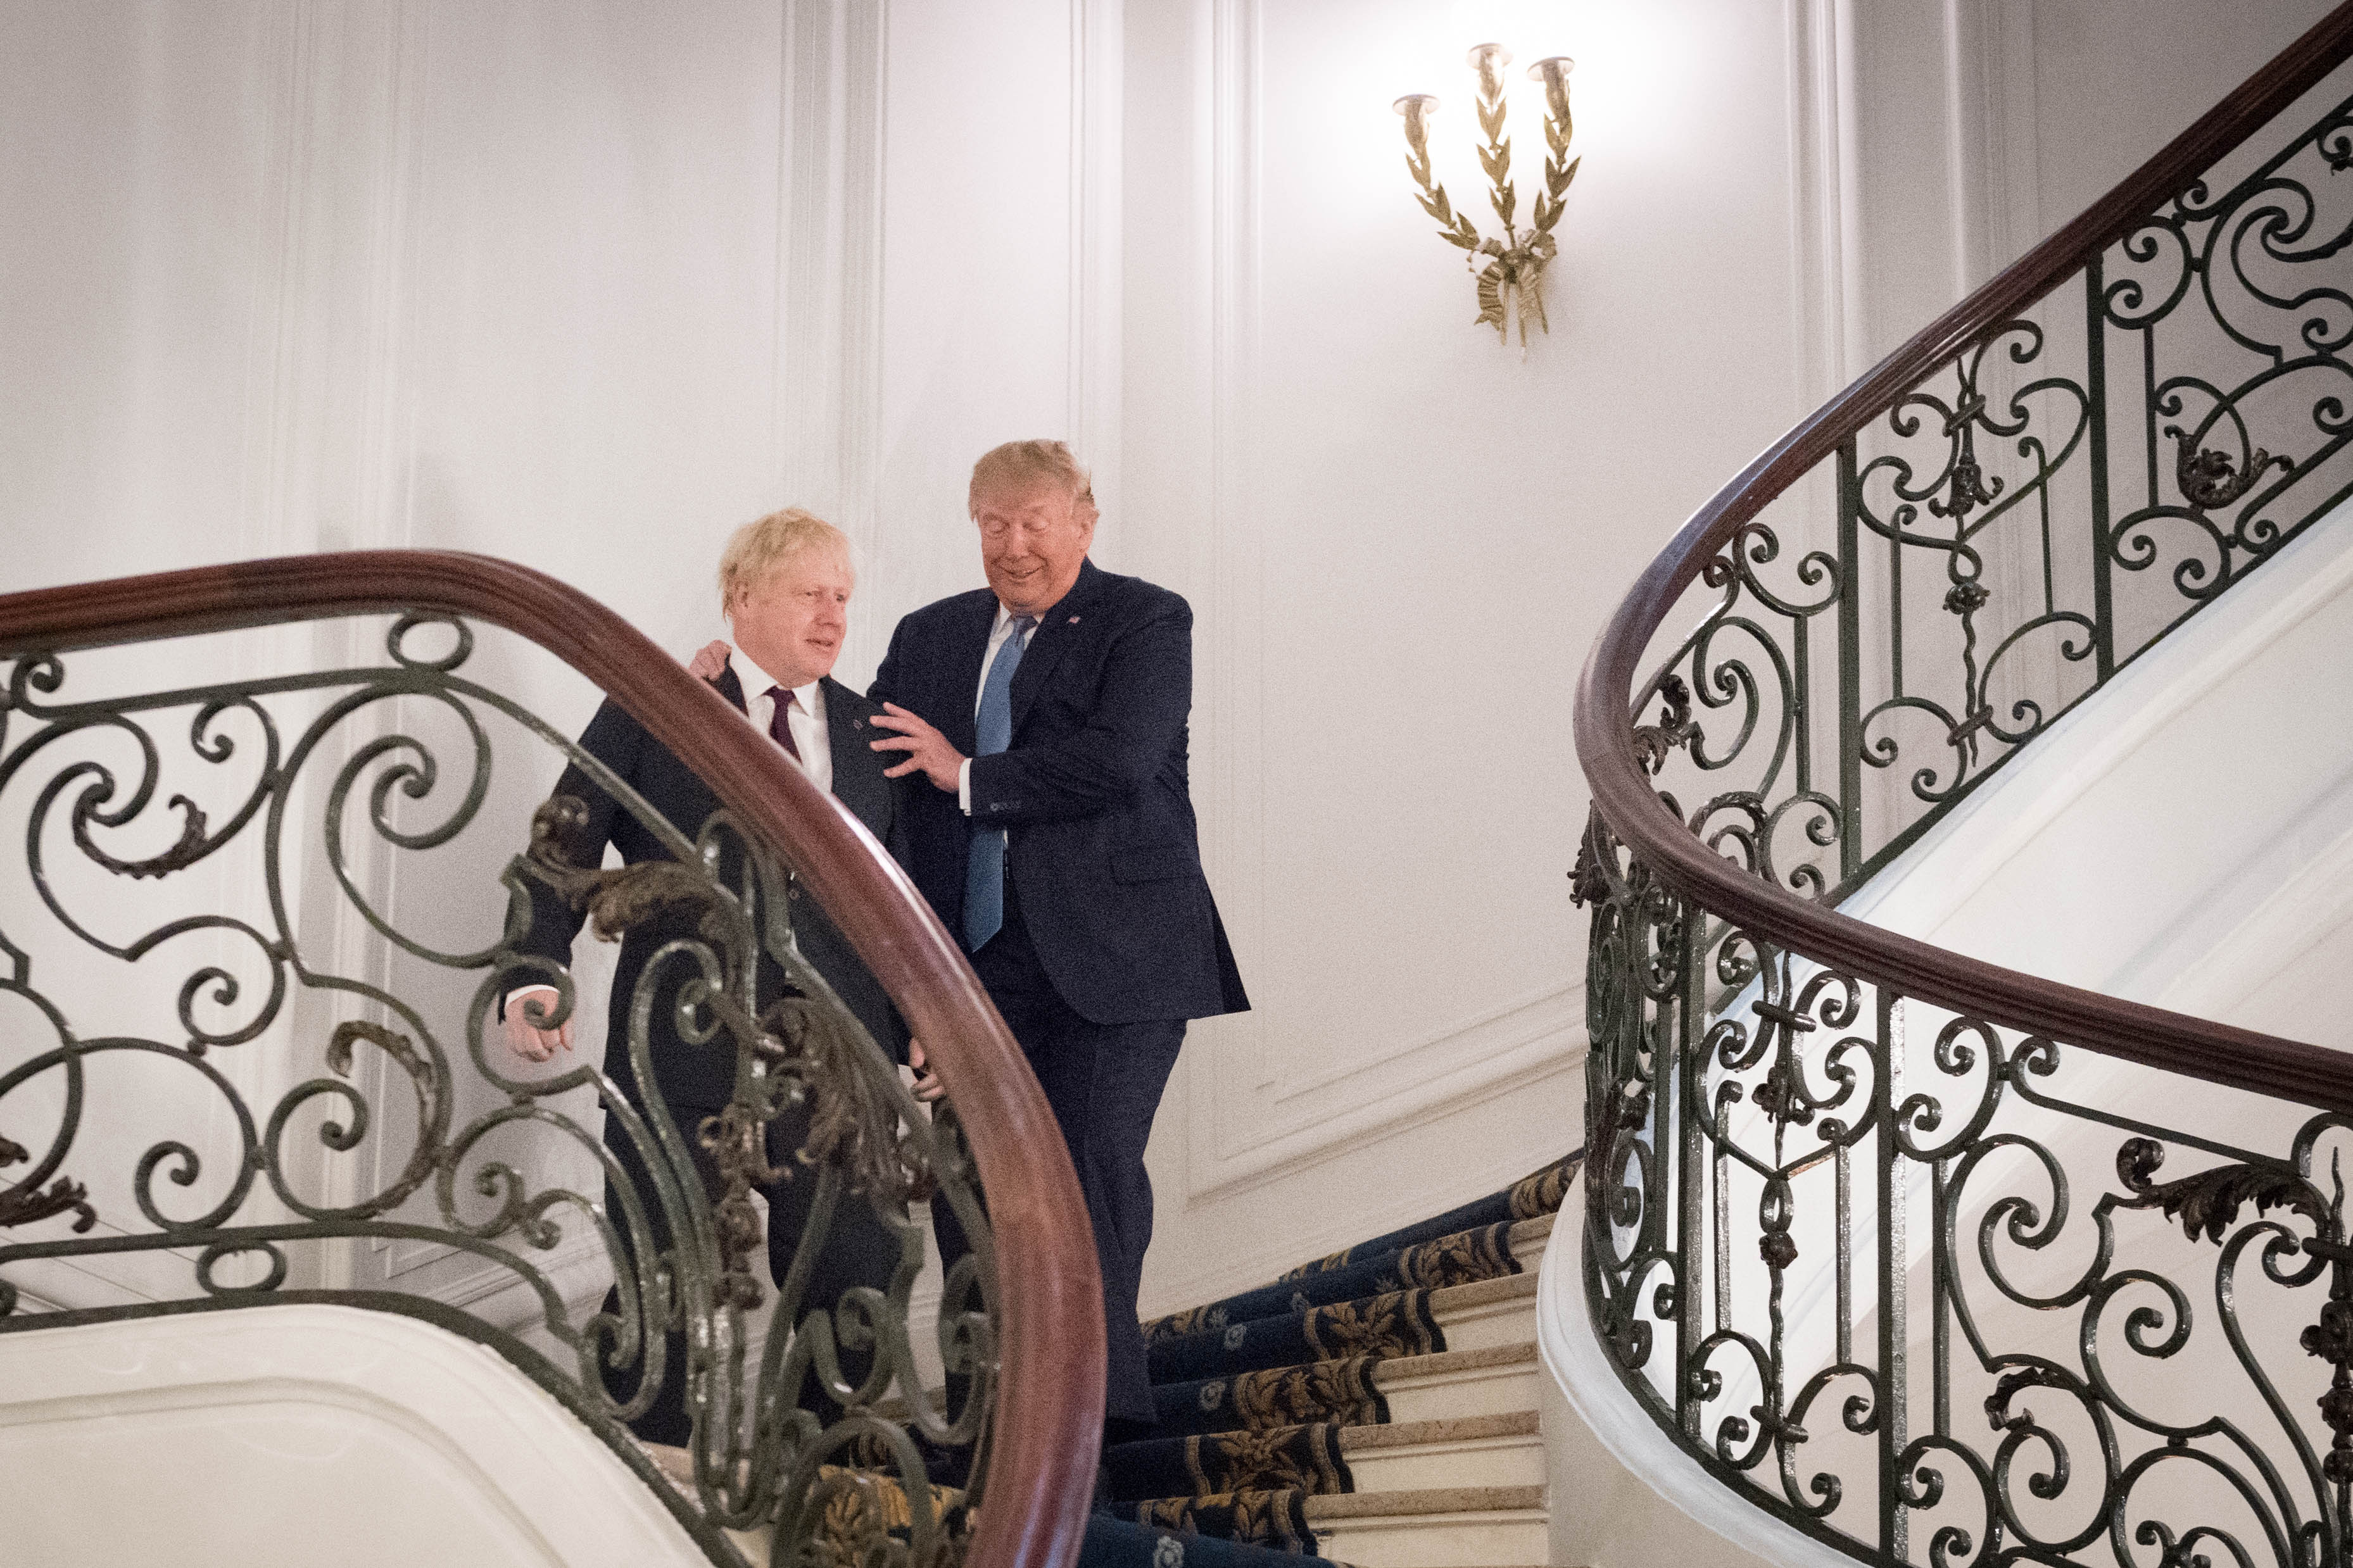 BIARRITZ, FRANCE - AUGUST 25: U.S. President Donald Trump and Britain's Prime Minister Boris Johnson arrive for a bilateral meeting during the G7 summit on August 25, 2019 in Biarritz, France. The French southwestern seaside resort of Biarritz is hosting the 45th G7 summit from August 24 to 26. High on the agenda will be the climate emergency, the US-China trade war, Britain's departure from the EU, and emergency talks on the Amazon wildfire crisis. (Photo by Stefan Rousseau - Pool/Getty Images)